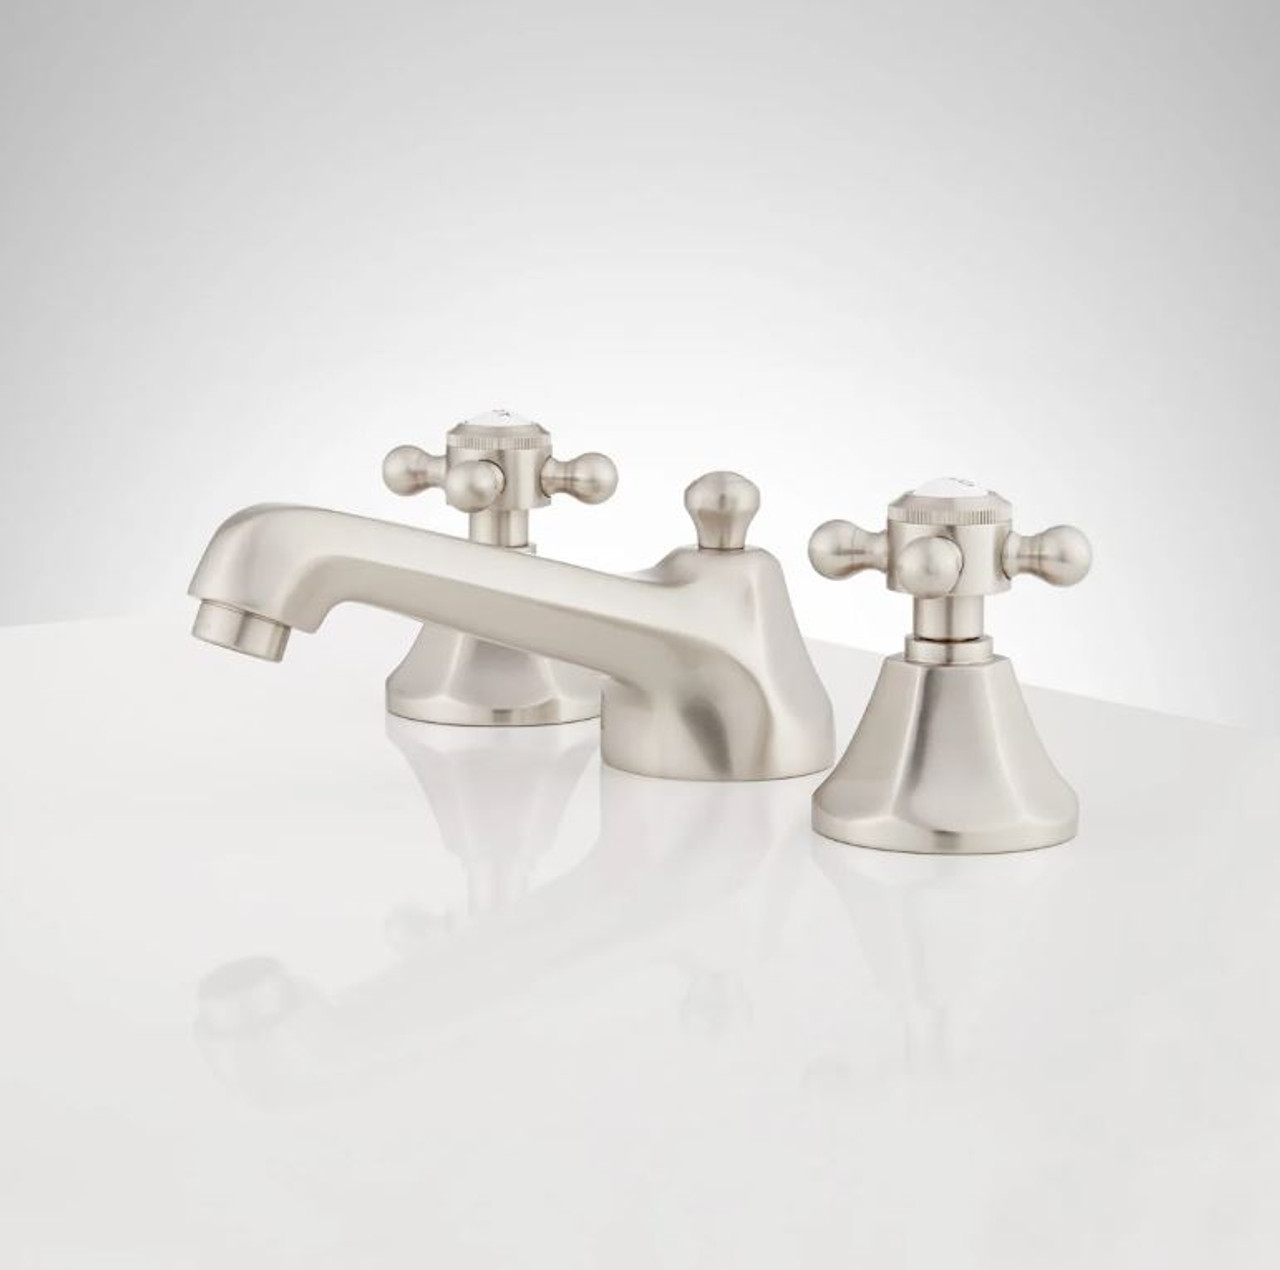 Signature Hardware Boca Raton 1 2 Gpm Widespread Bathroom Faucet With Pop Up Drain Assembly Royal Bath Place